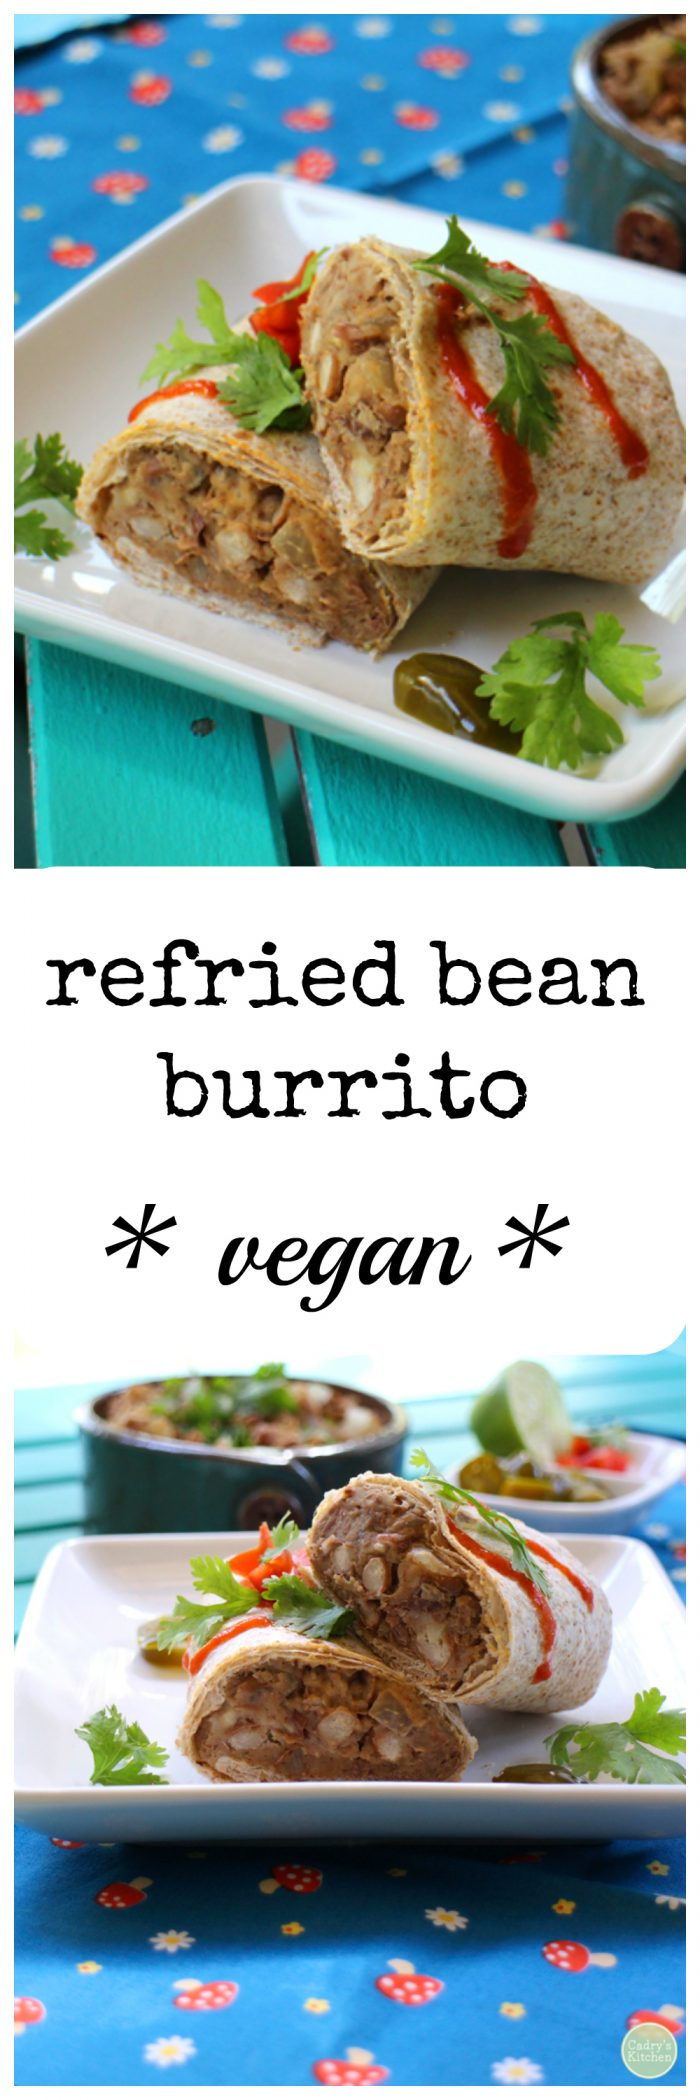 A cozy & comforting lunch - refried bean burrito | cadryskitchen.com #vegan